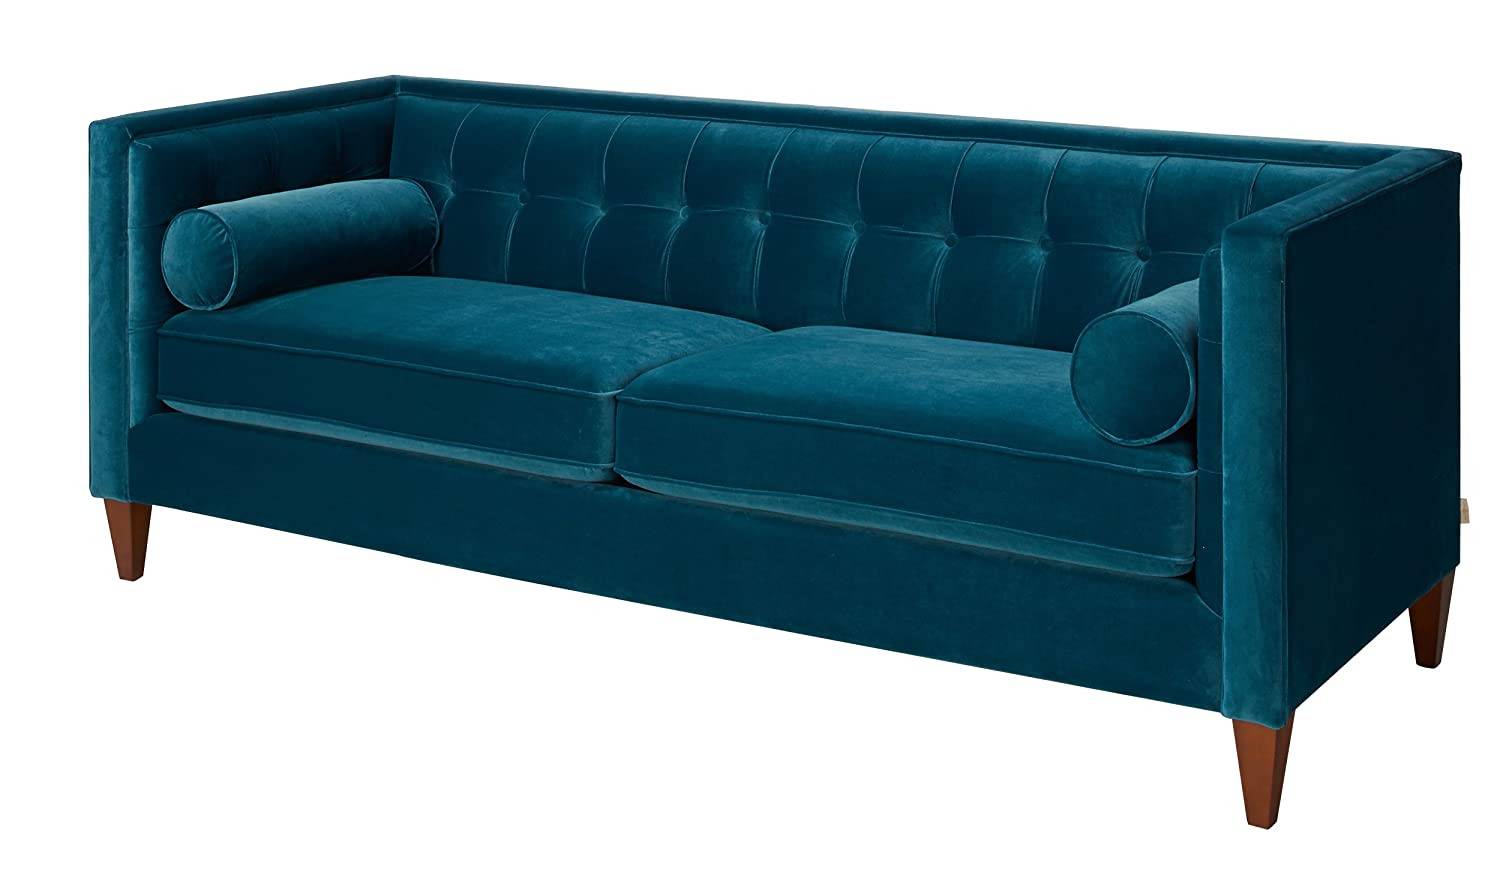 Wonderful Amazon.com: Jennifer Taylor Home Sofa, Satin Teal, Velvet, Hand Tufted,  Hand Painted And Hand Rub Finished Wooden Legs: Kitchen U0026 Dining